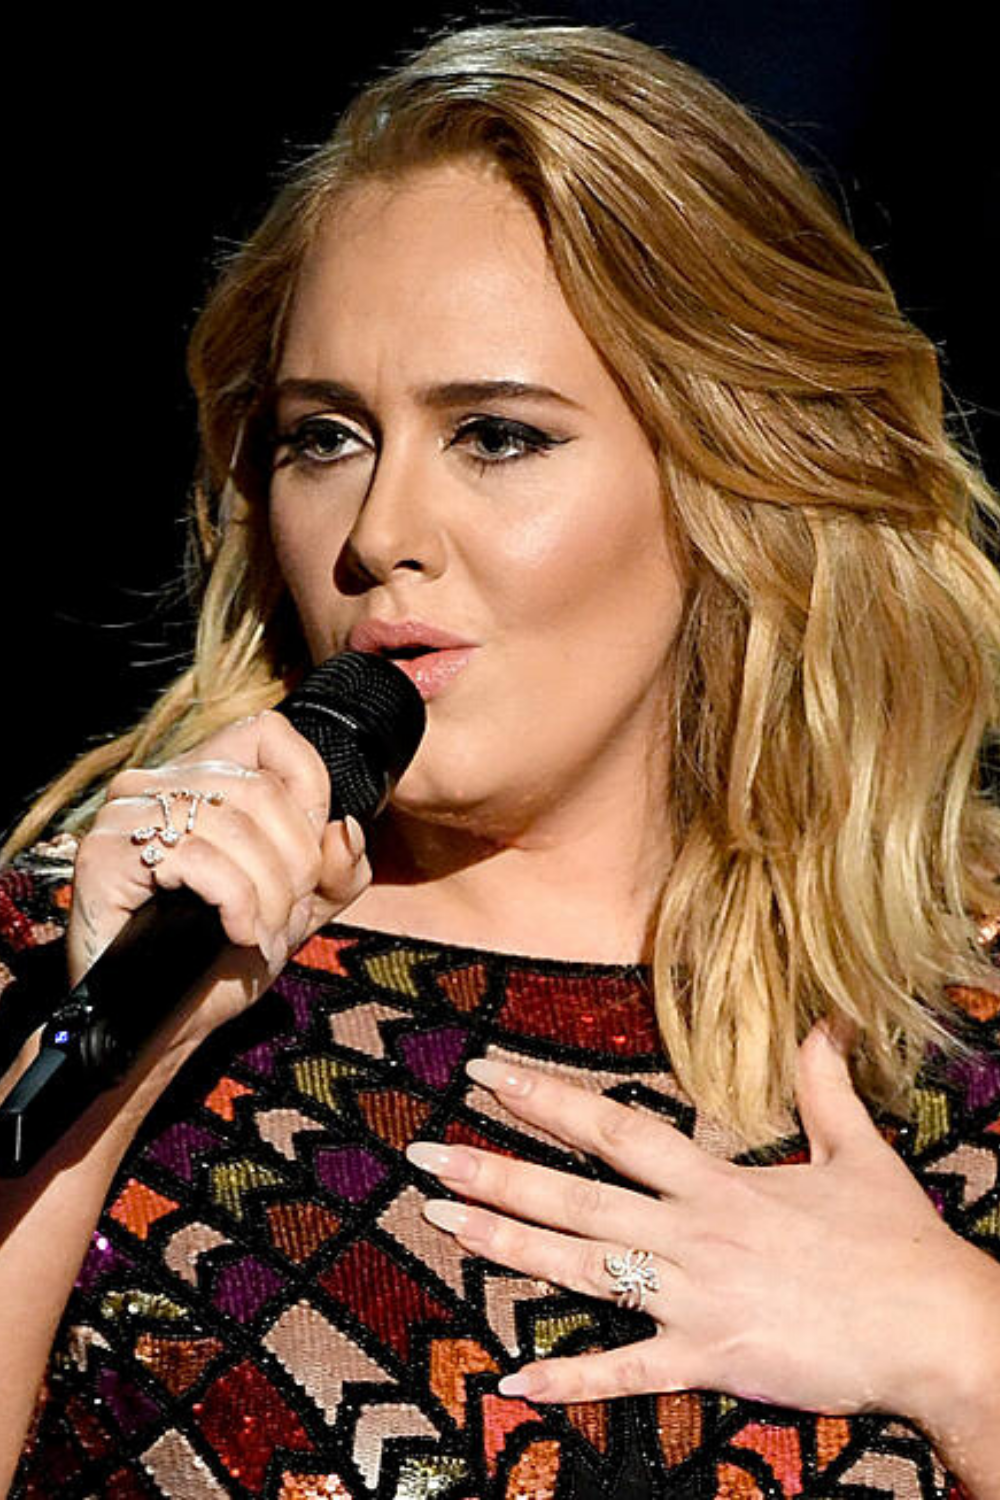 Adele credits spiritual crystal healing for calming her pre-show nerves holistically. #lovewitch #witchcraft #wicca #paganism #witchyaesthetic #wiccan #wiccanspells #whichspellswork #magickspell #witchesspells #spirituality #paganismwomen #paganbeliefs #witchesspellsandpotions #paganspirituality